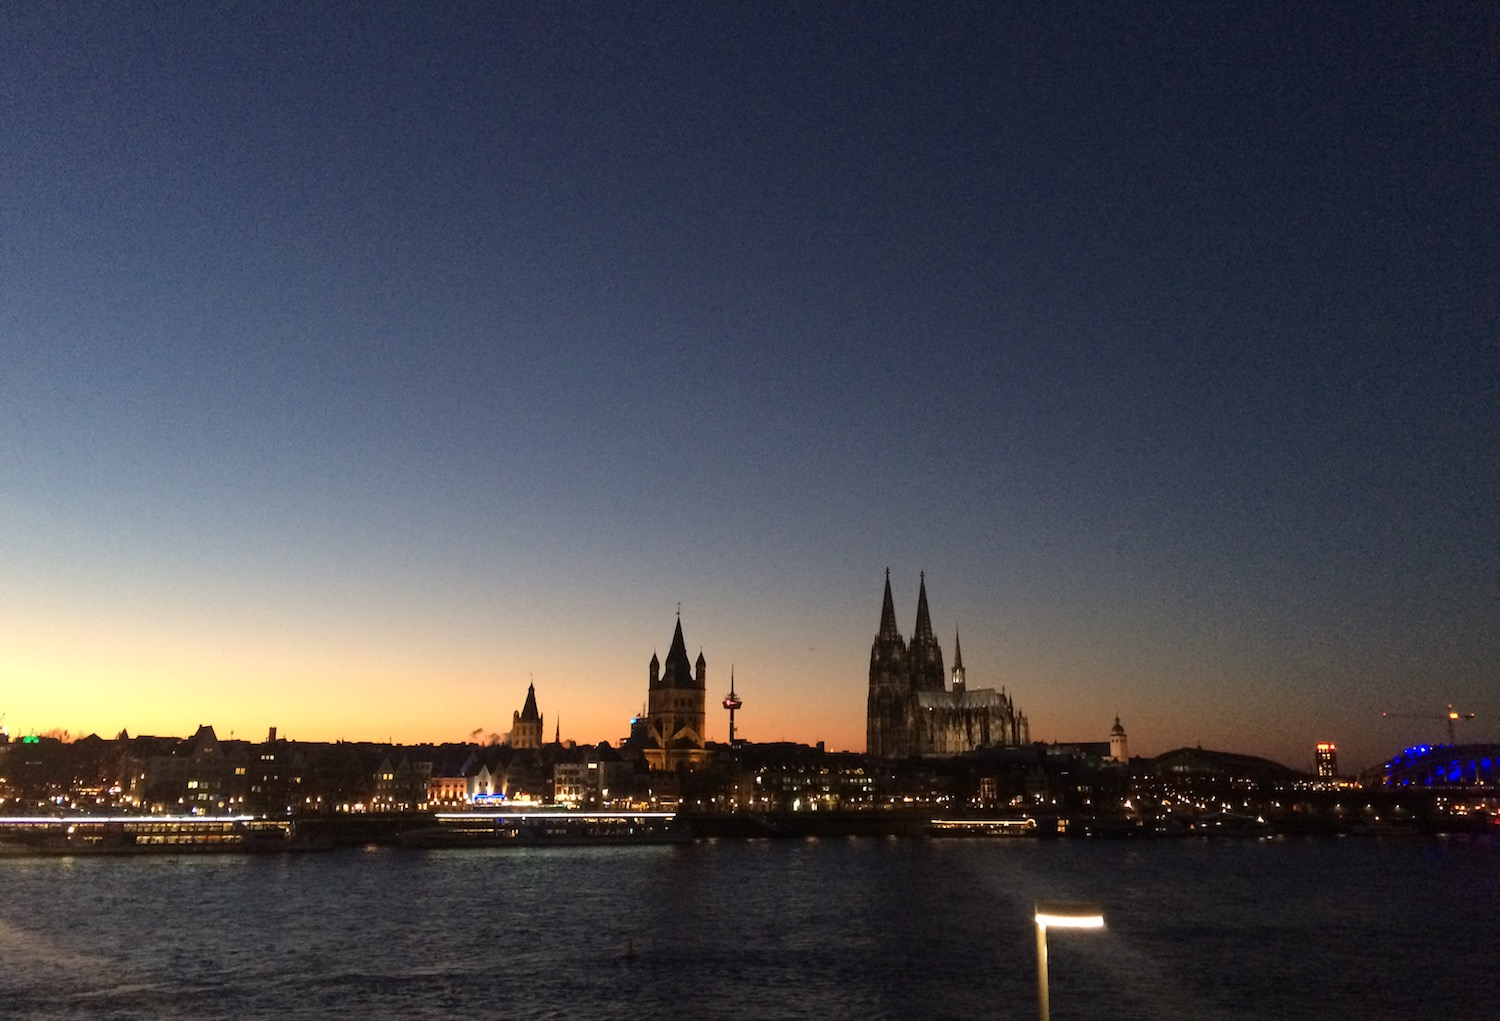 The skyline of Cologne, Germany at sundown